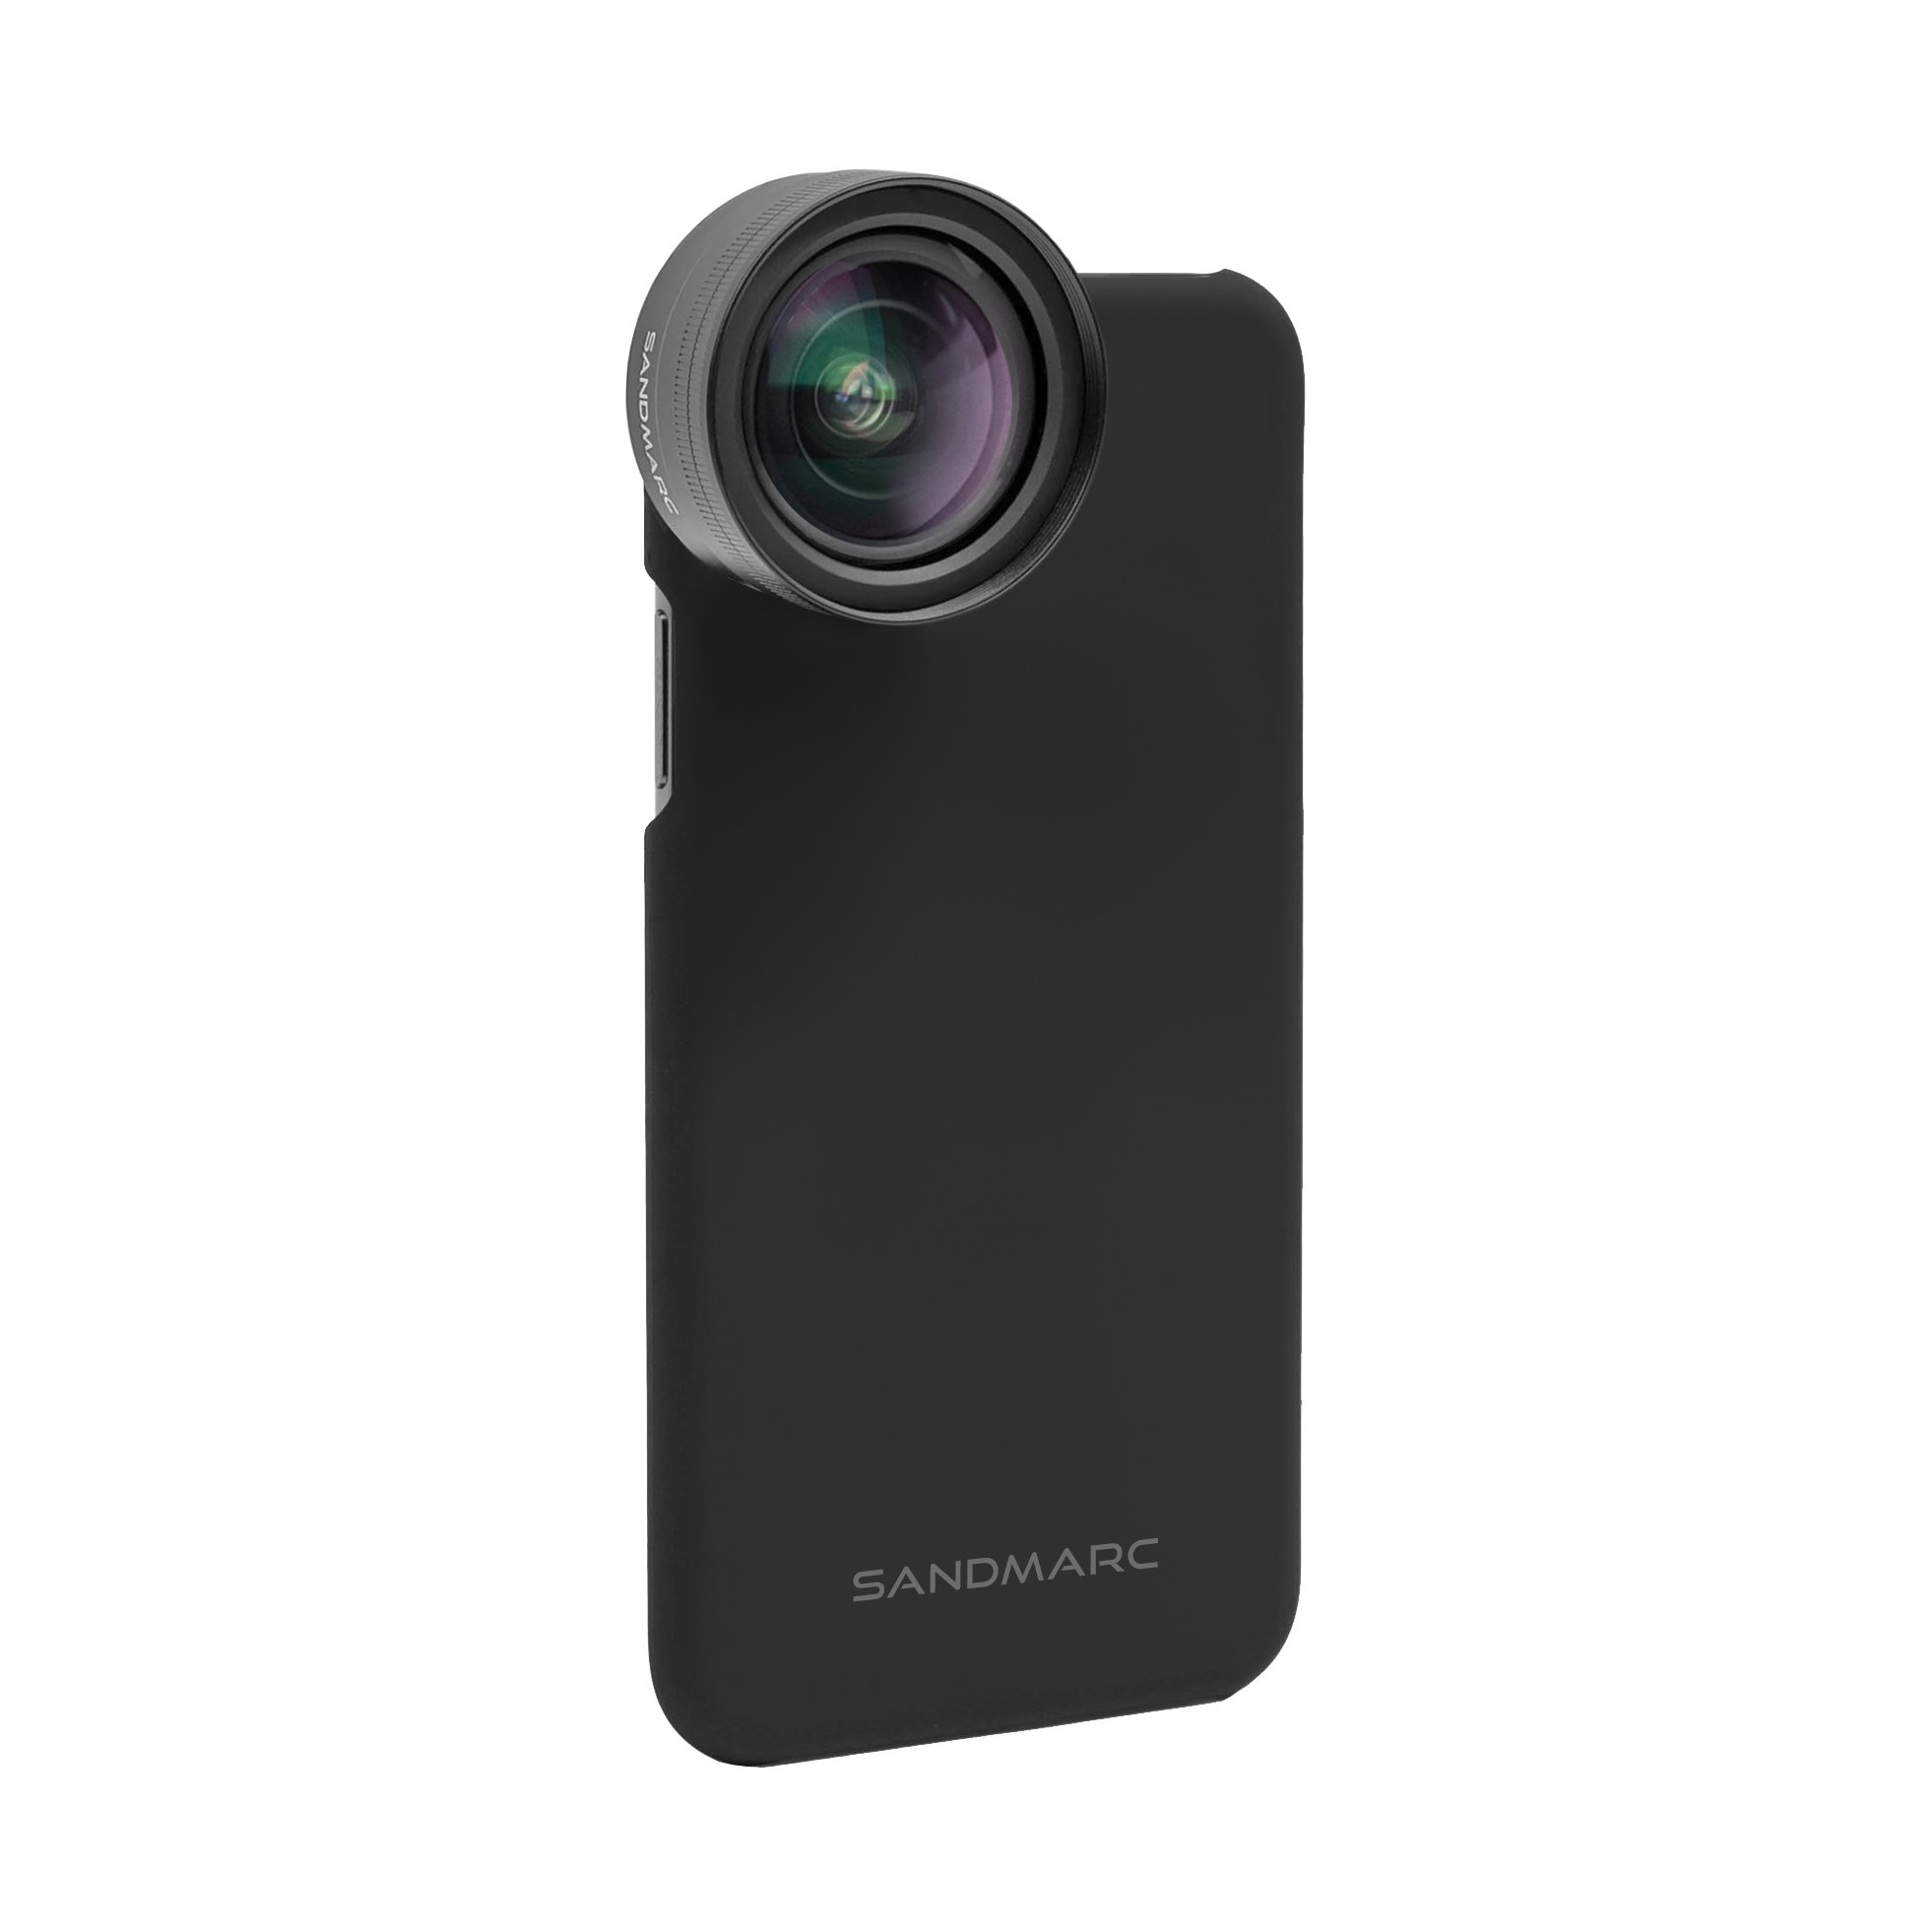 WIDE ANGLE iPHONE LENS -